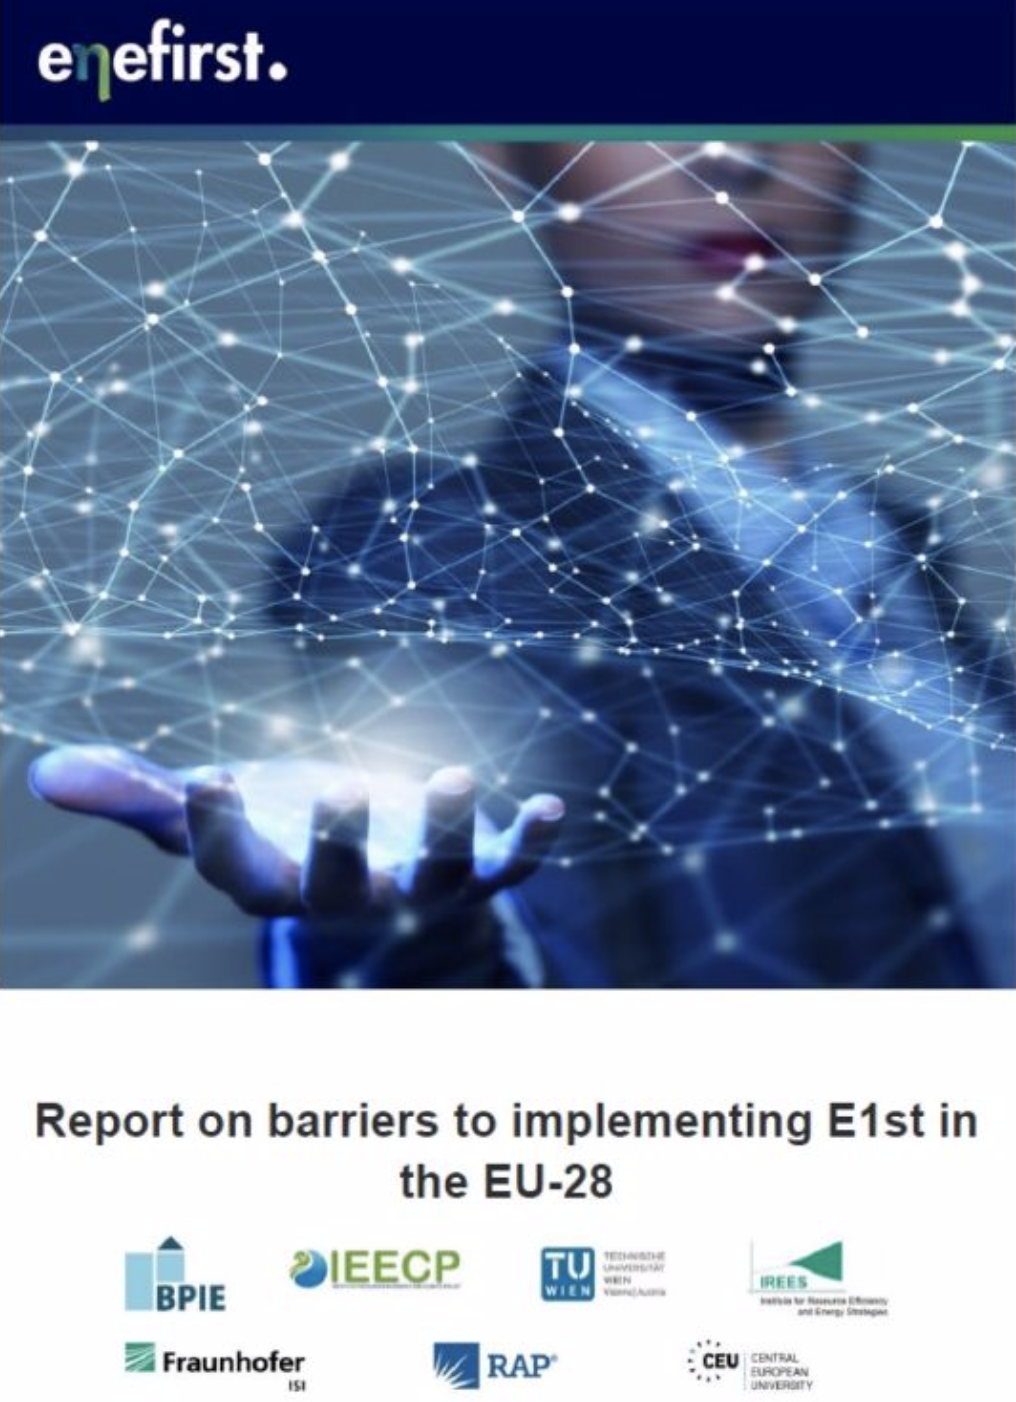 Enefirst report – Barriers to implementing E1st in the EU-28